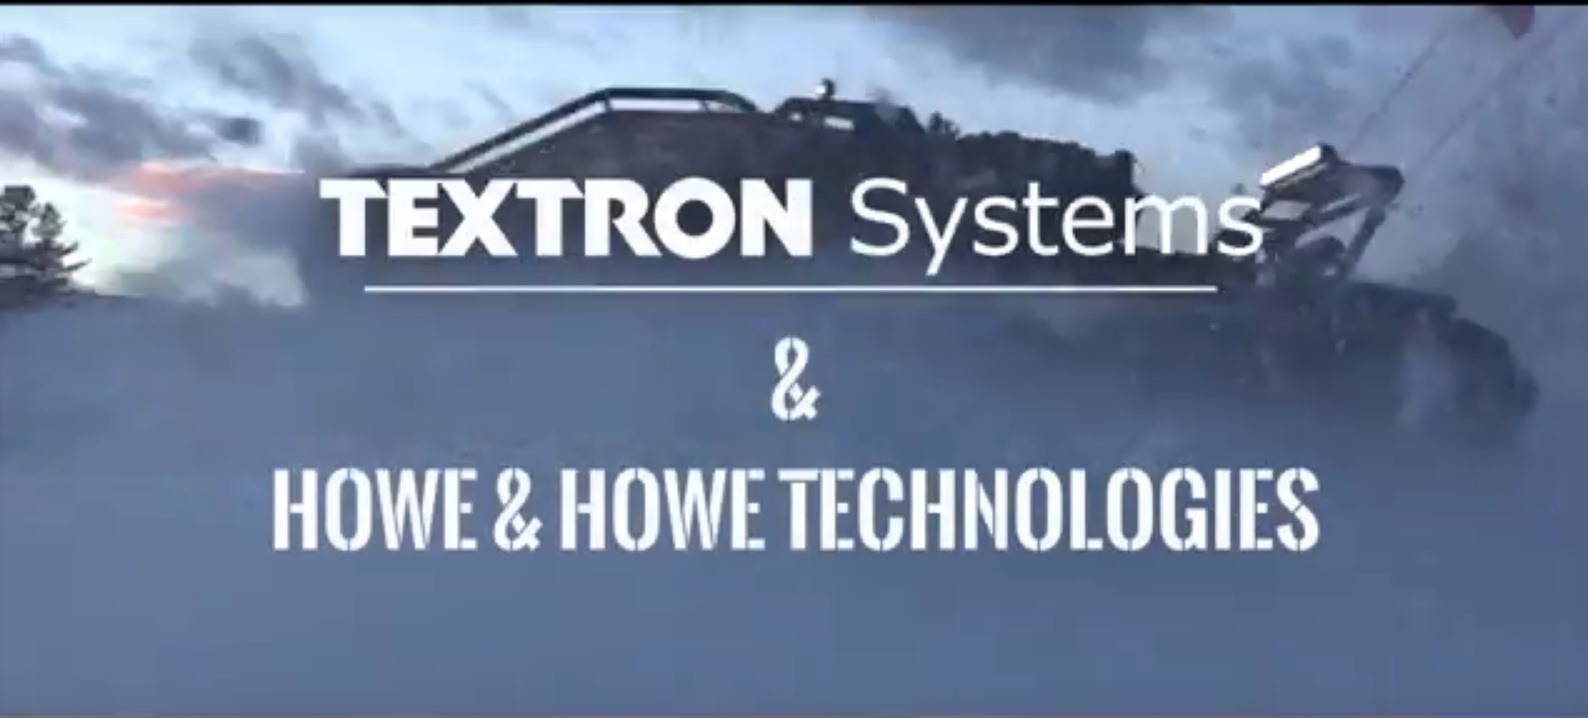 Textron Systems Plans to Acquire Howe & Howe Technologies